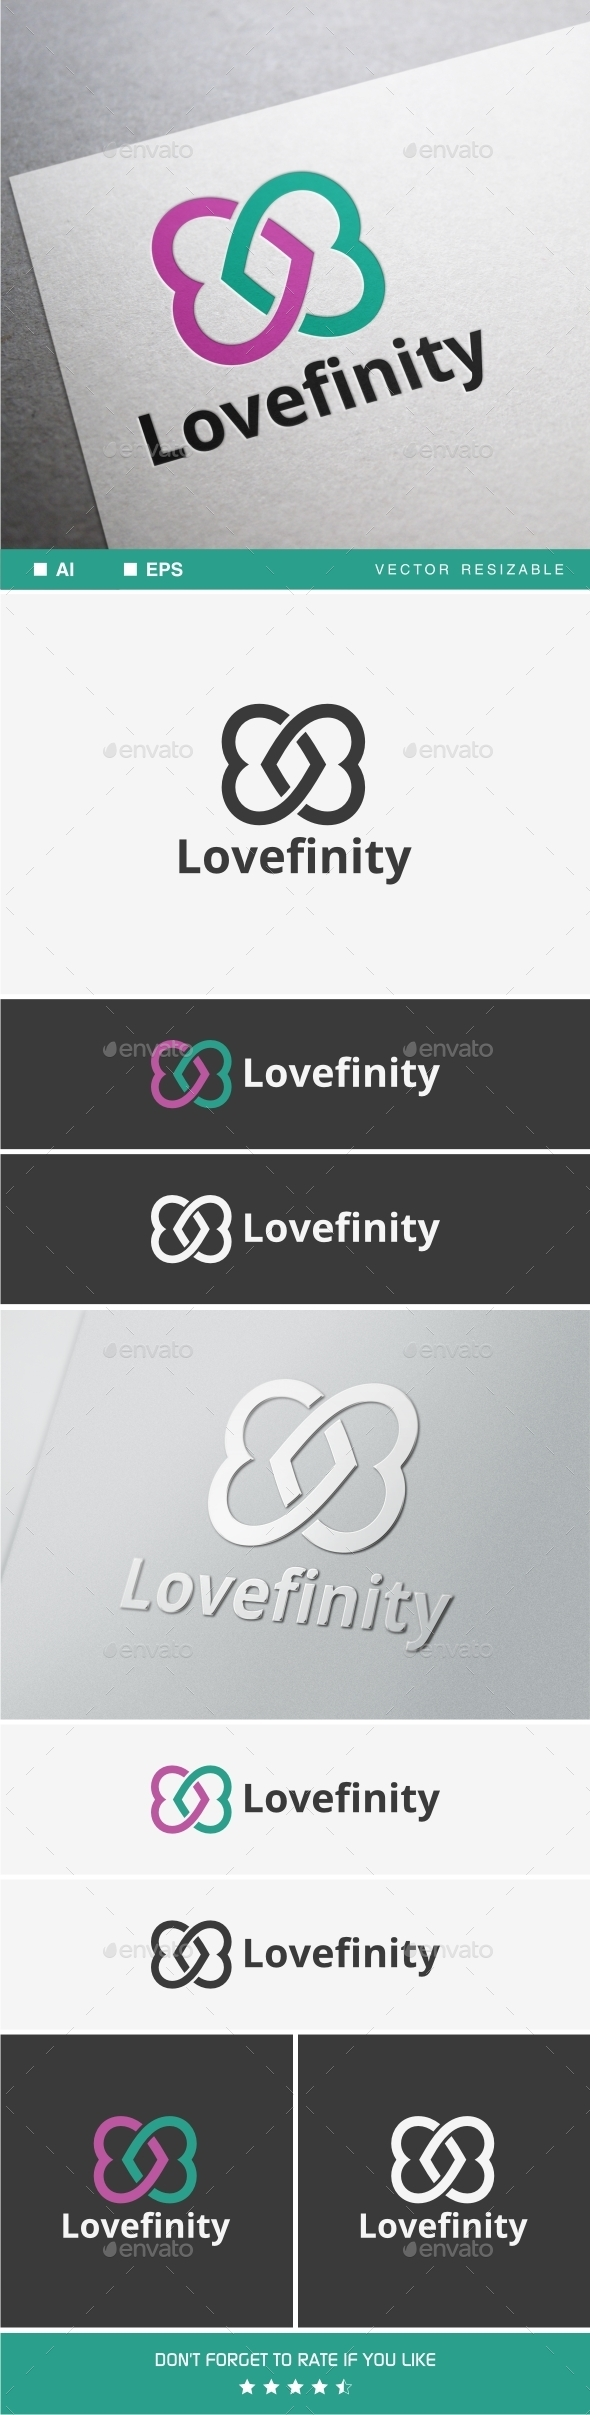 GraphicRiver Lovefinity 9957454